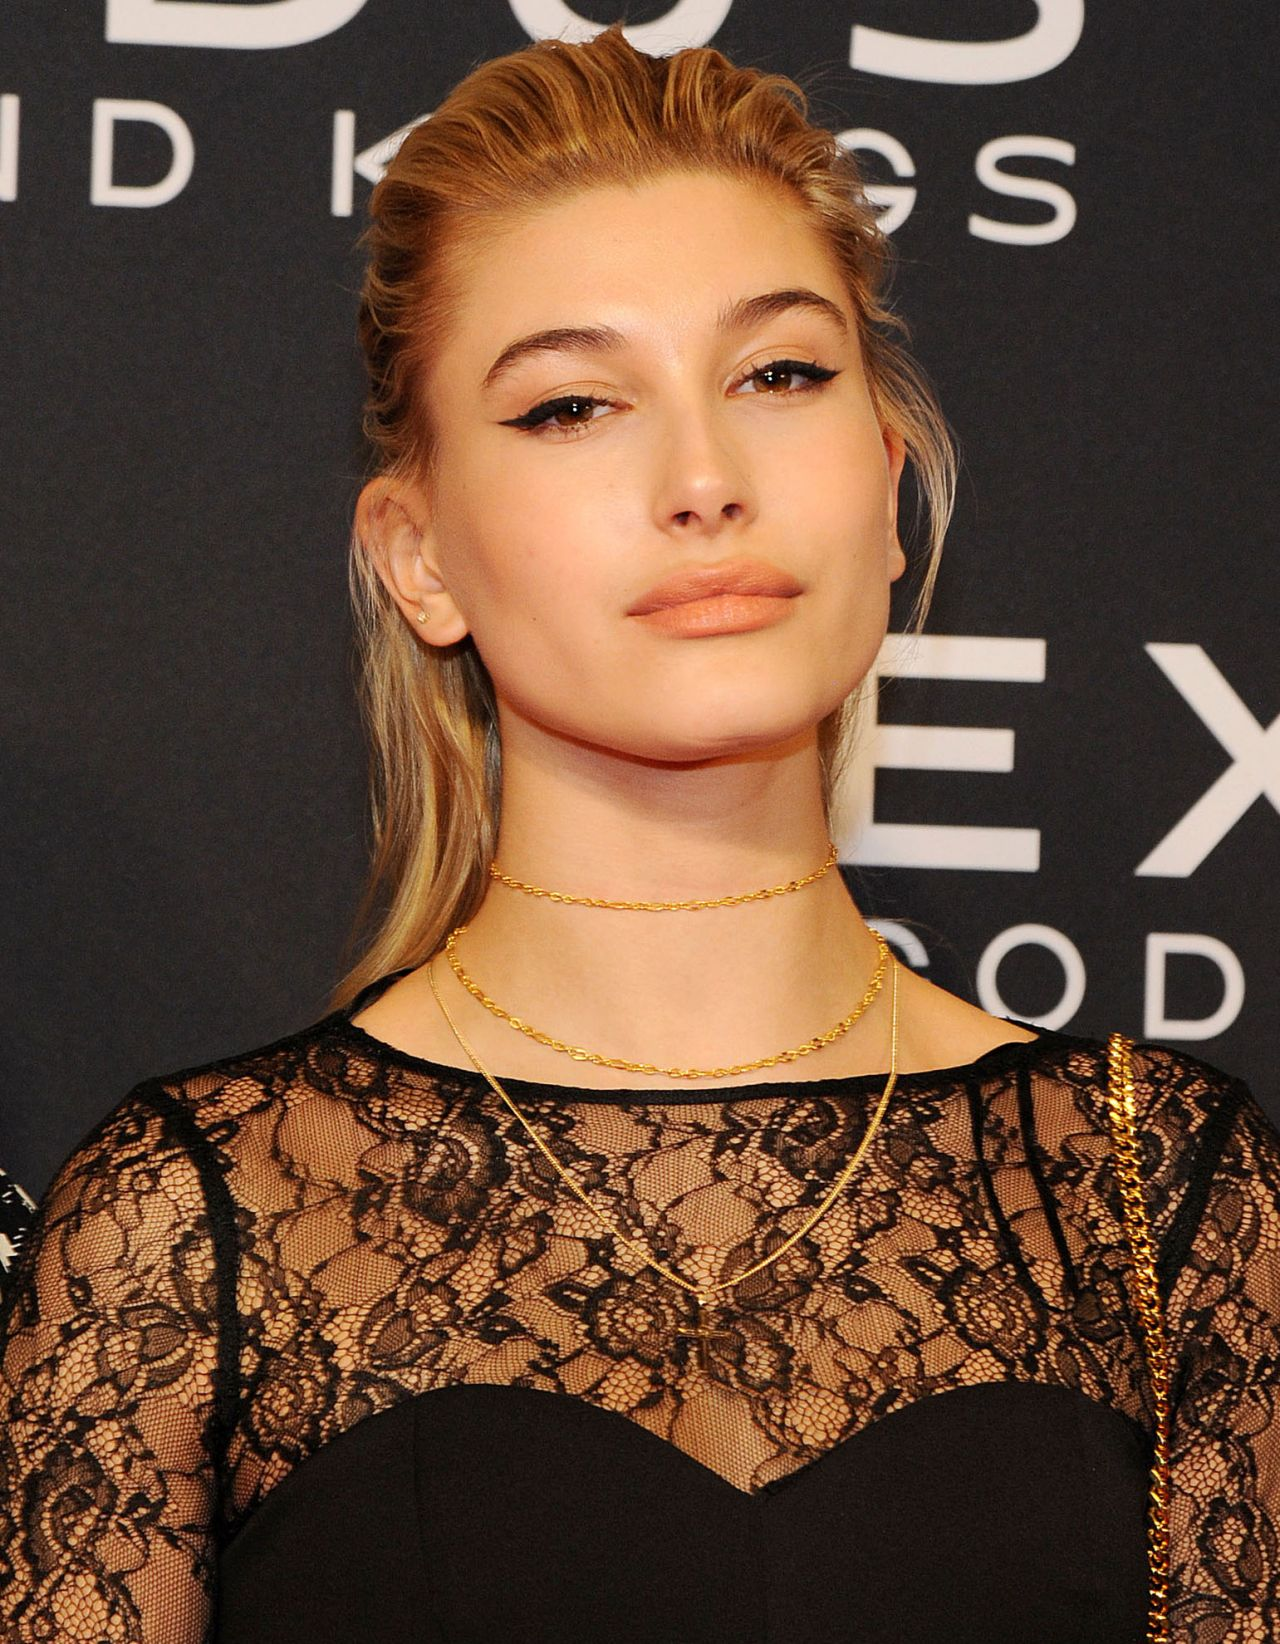 Hailey Baldwin In Fashion Magazine October 2017 Issue: 'Exodus: Gods And Kings' Premiere In New